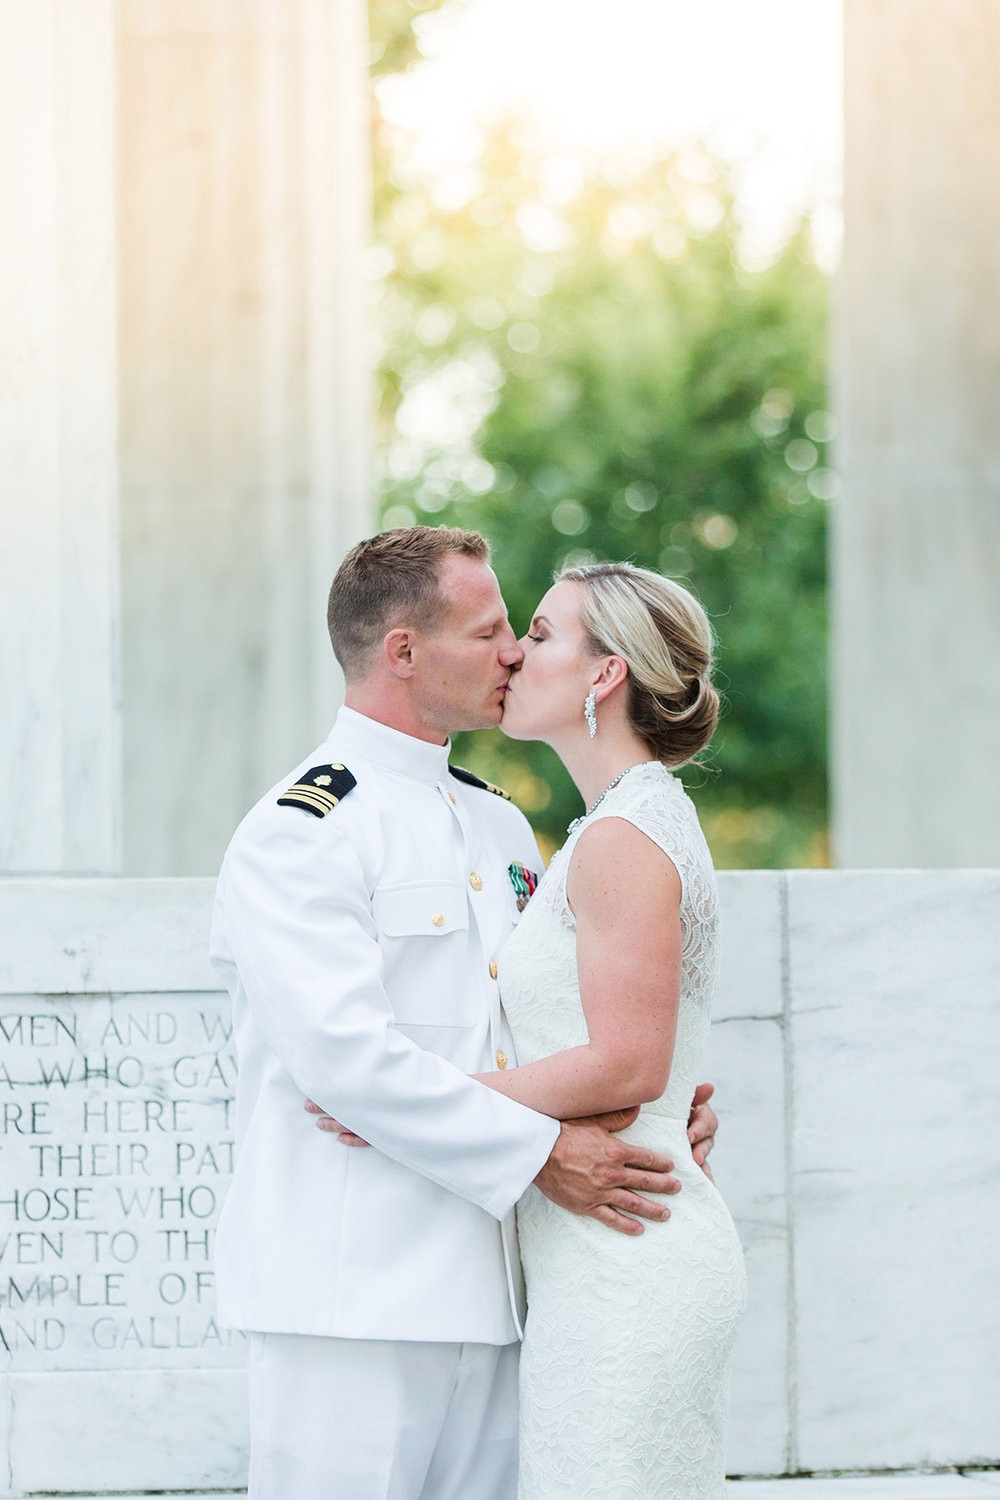 Intimate Washington DC Military Elopement : theme was a little bit Vintage with a Touch of Urban / by Marianne Blackham Photography - a Washington DC based natural light wedding photographer / as seen on www.BrendasWeddingBlog.com